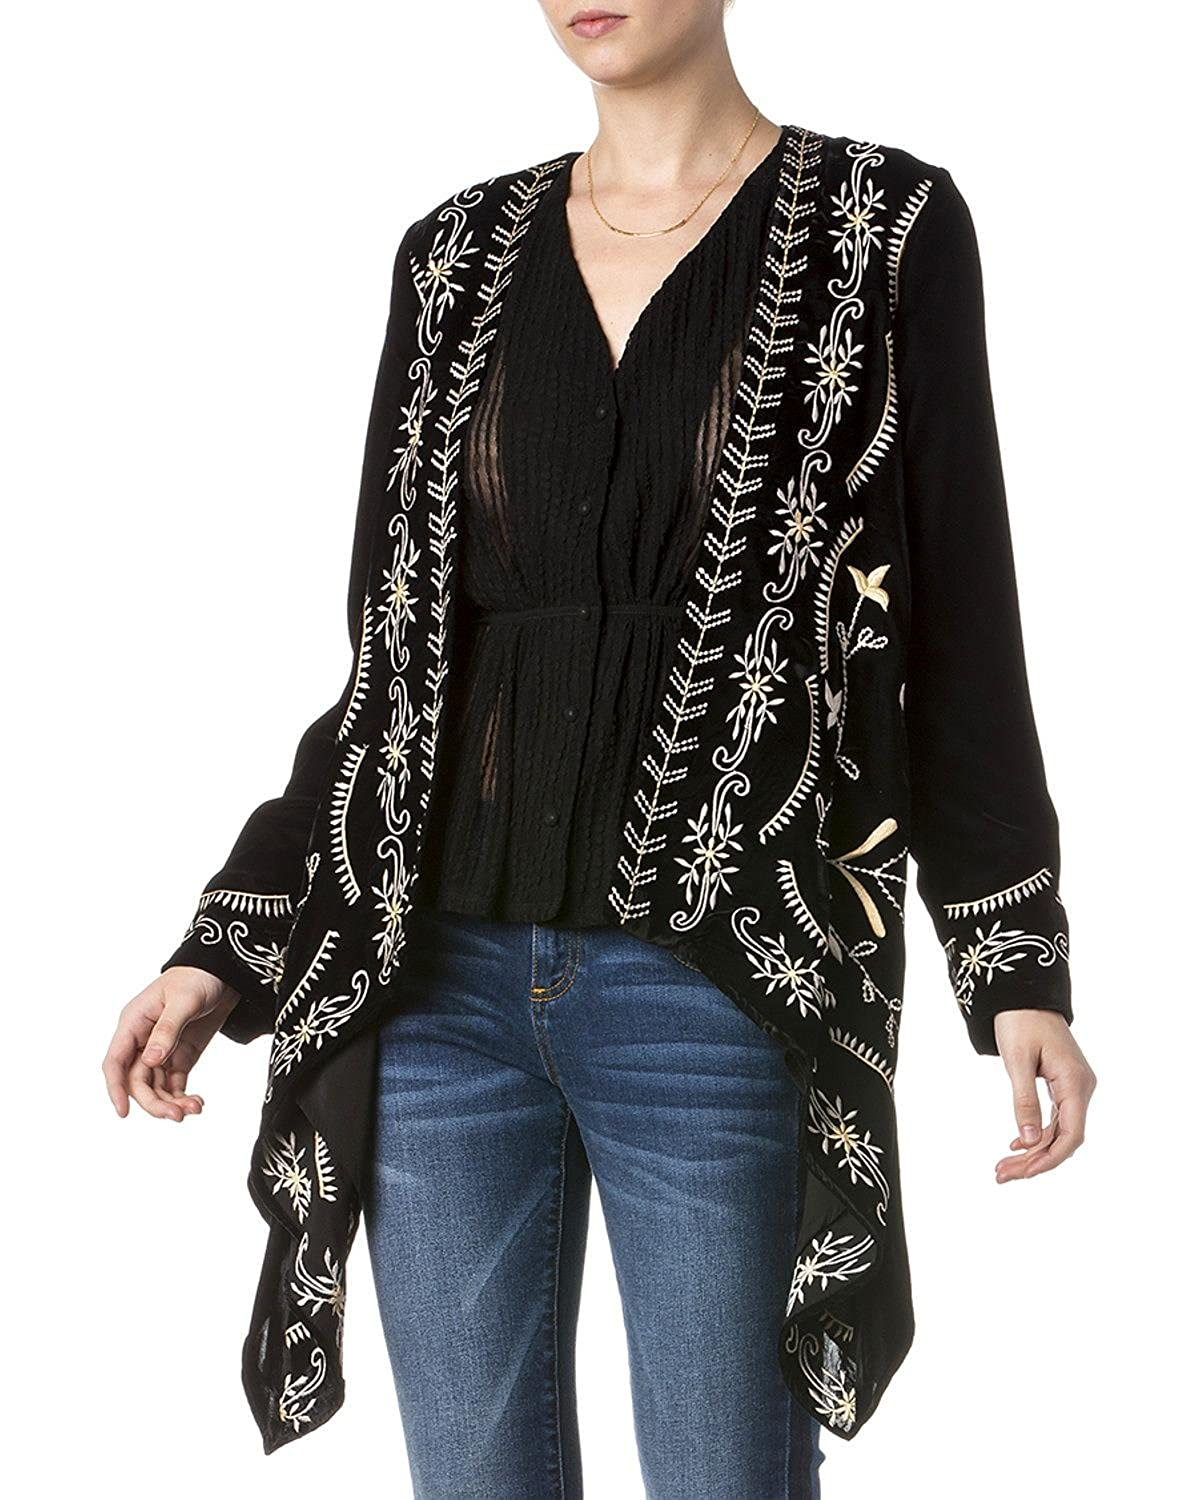 Miss Me Women's Embroidered Velvet Cardigan - Mdj443l 2000217597